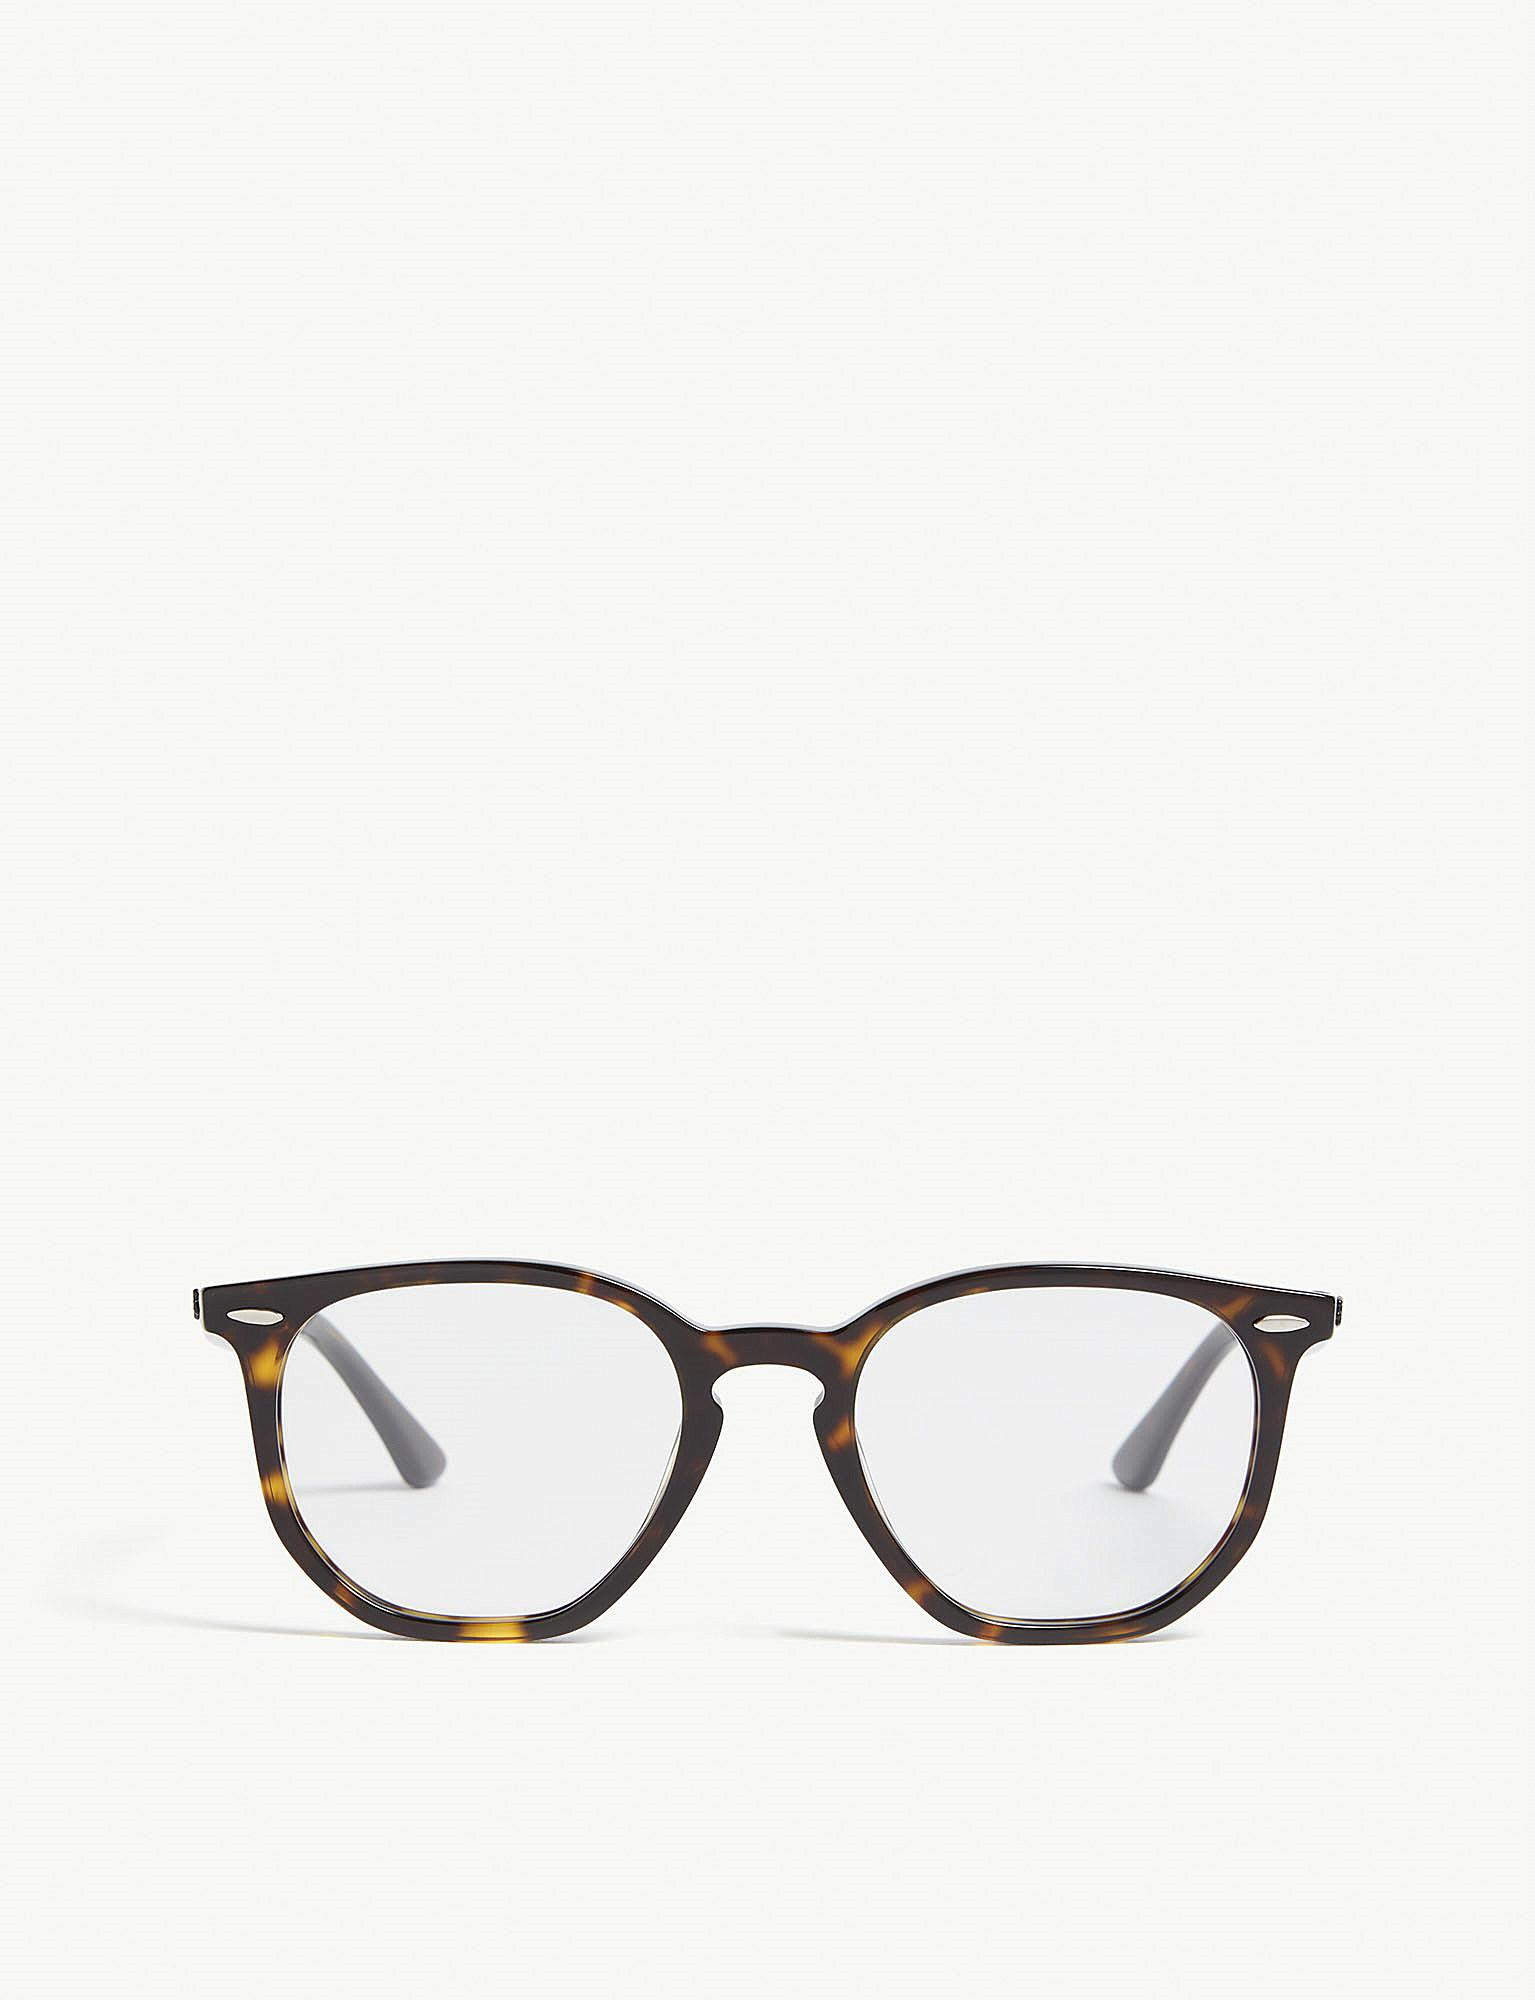 82b73b2a722 Lyst - Ray-Ban Rb7151 Square-frame Havana Glasses in Brown for Men